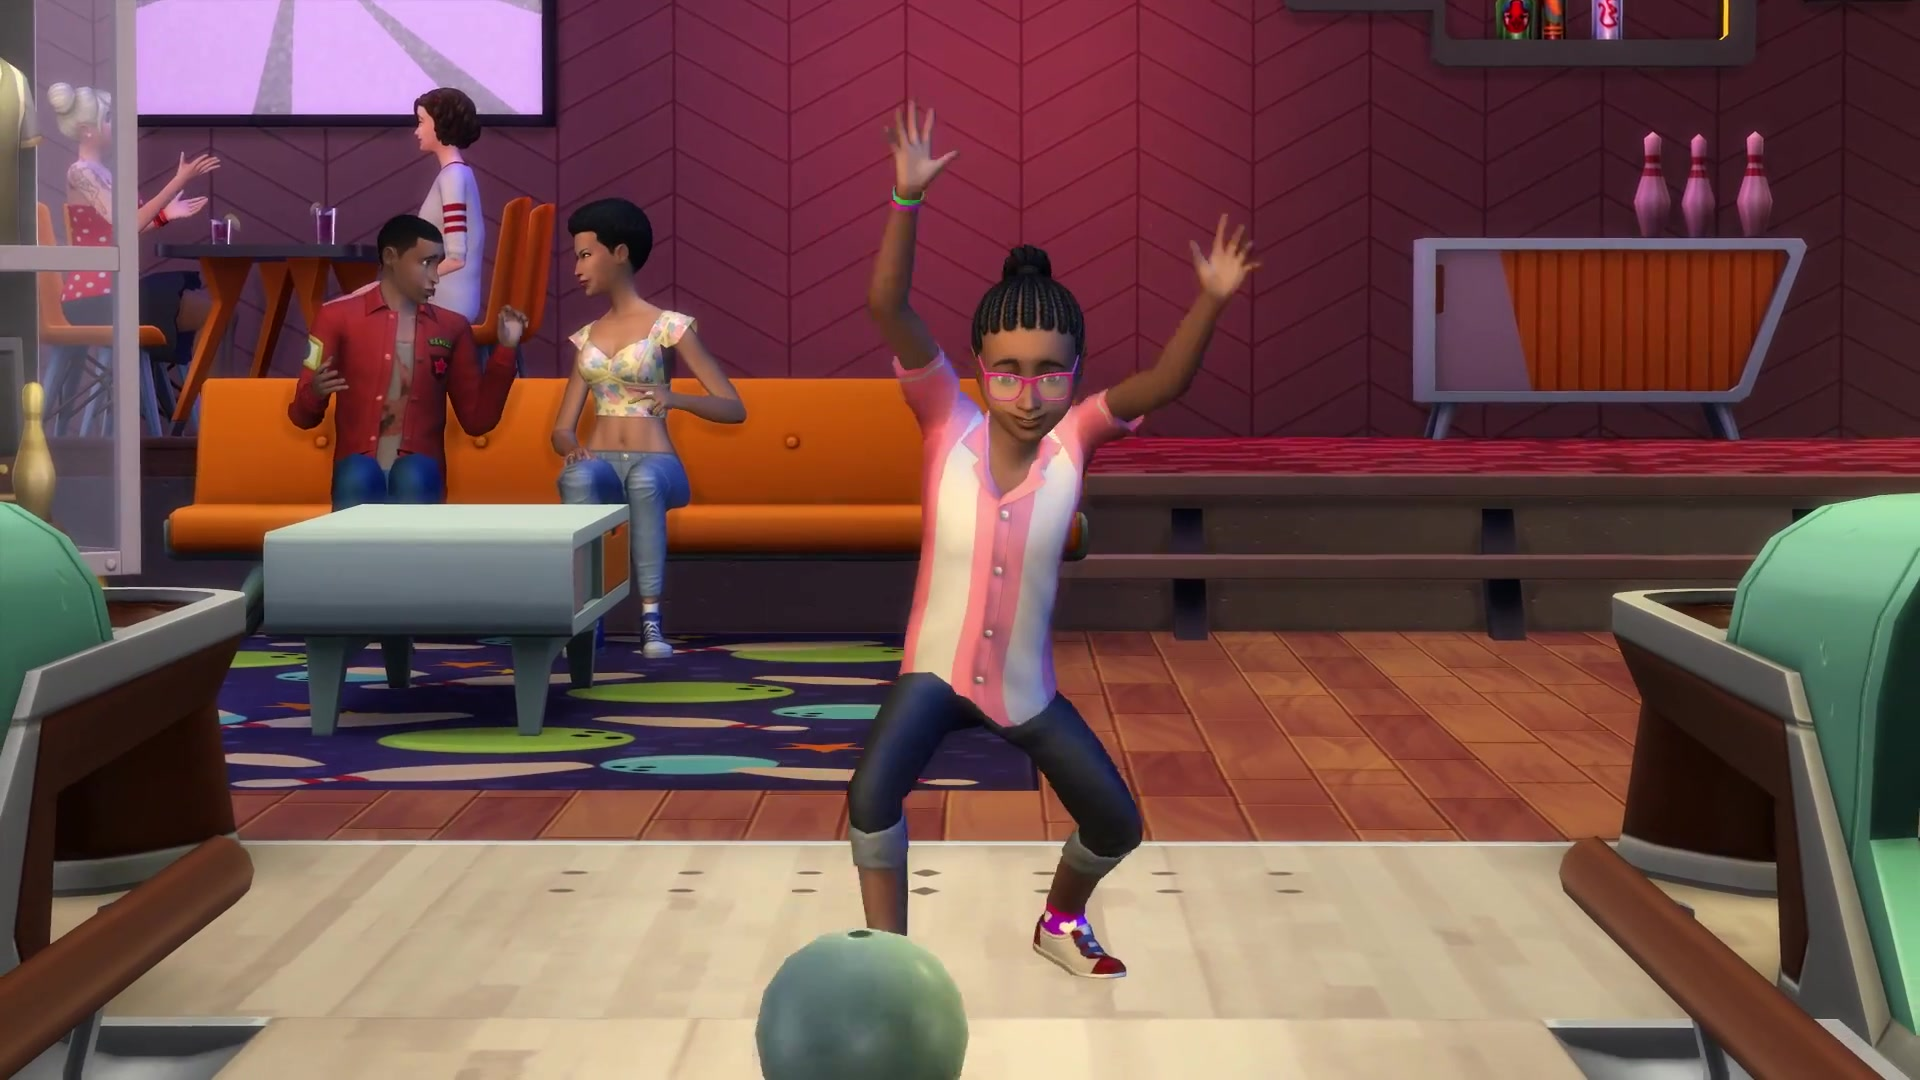 The-Sims-4-Bowling-Night-Stuff-Official-Trailer-0535.jpg (1920×1080)